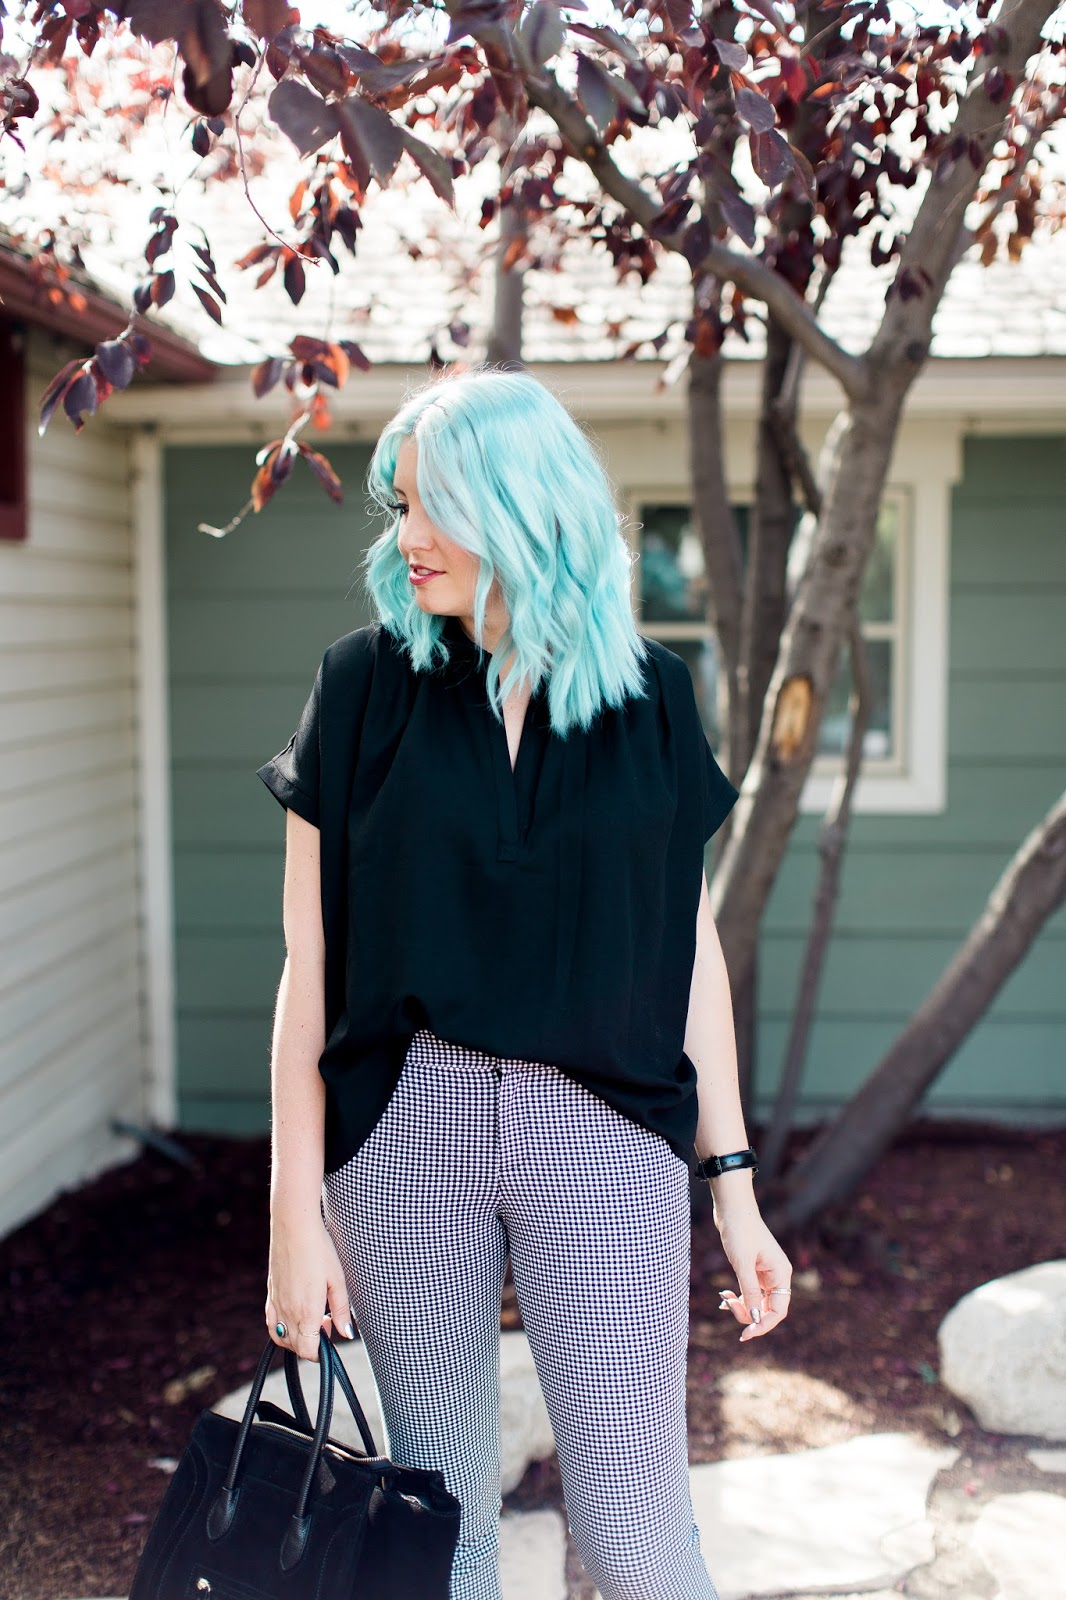 Blue Hair, Black Shirt, Gingham Pants